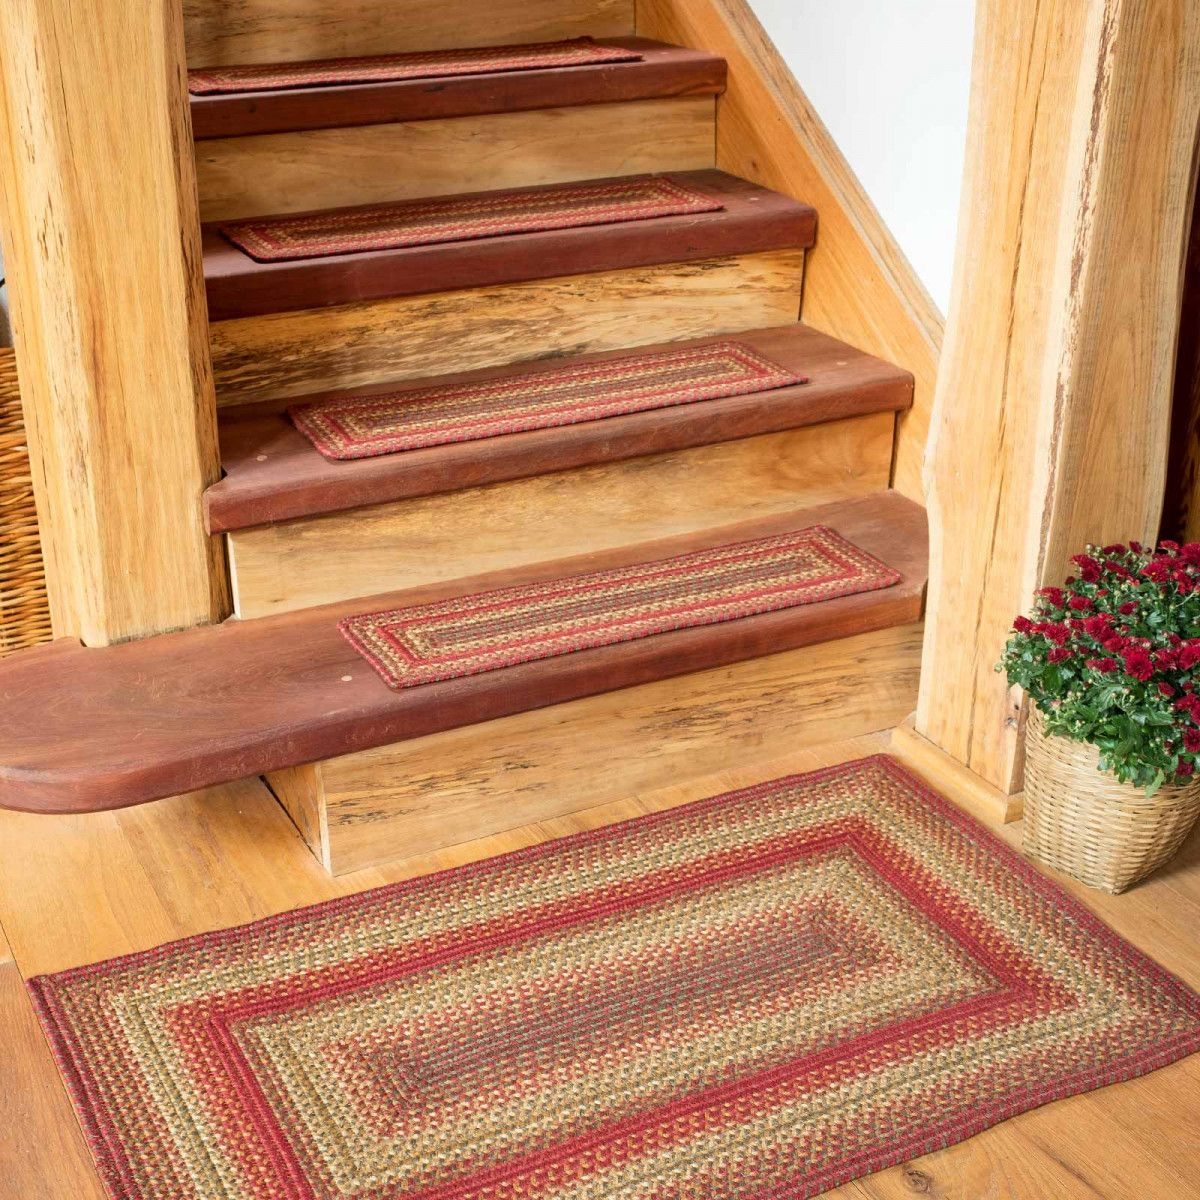 Best Cider Barn Red Jute Stair Tread Or Table Runner With 640 x 480